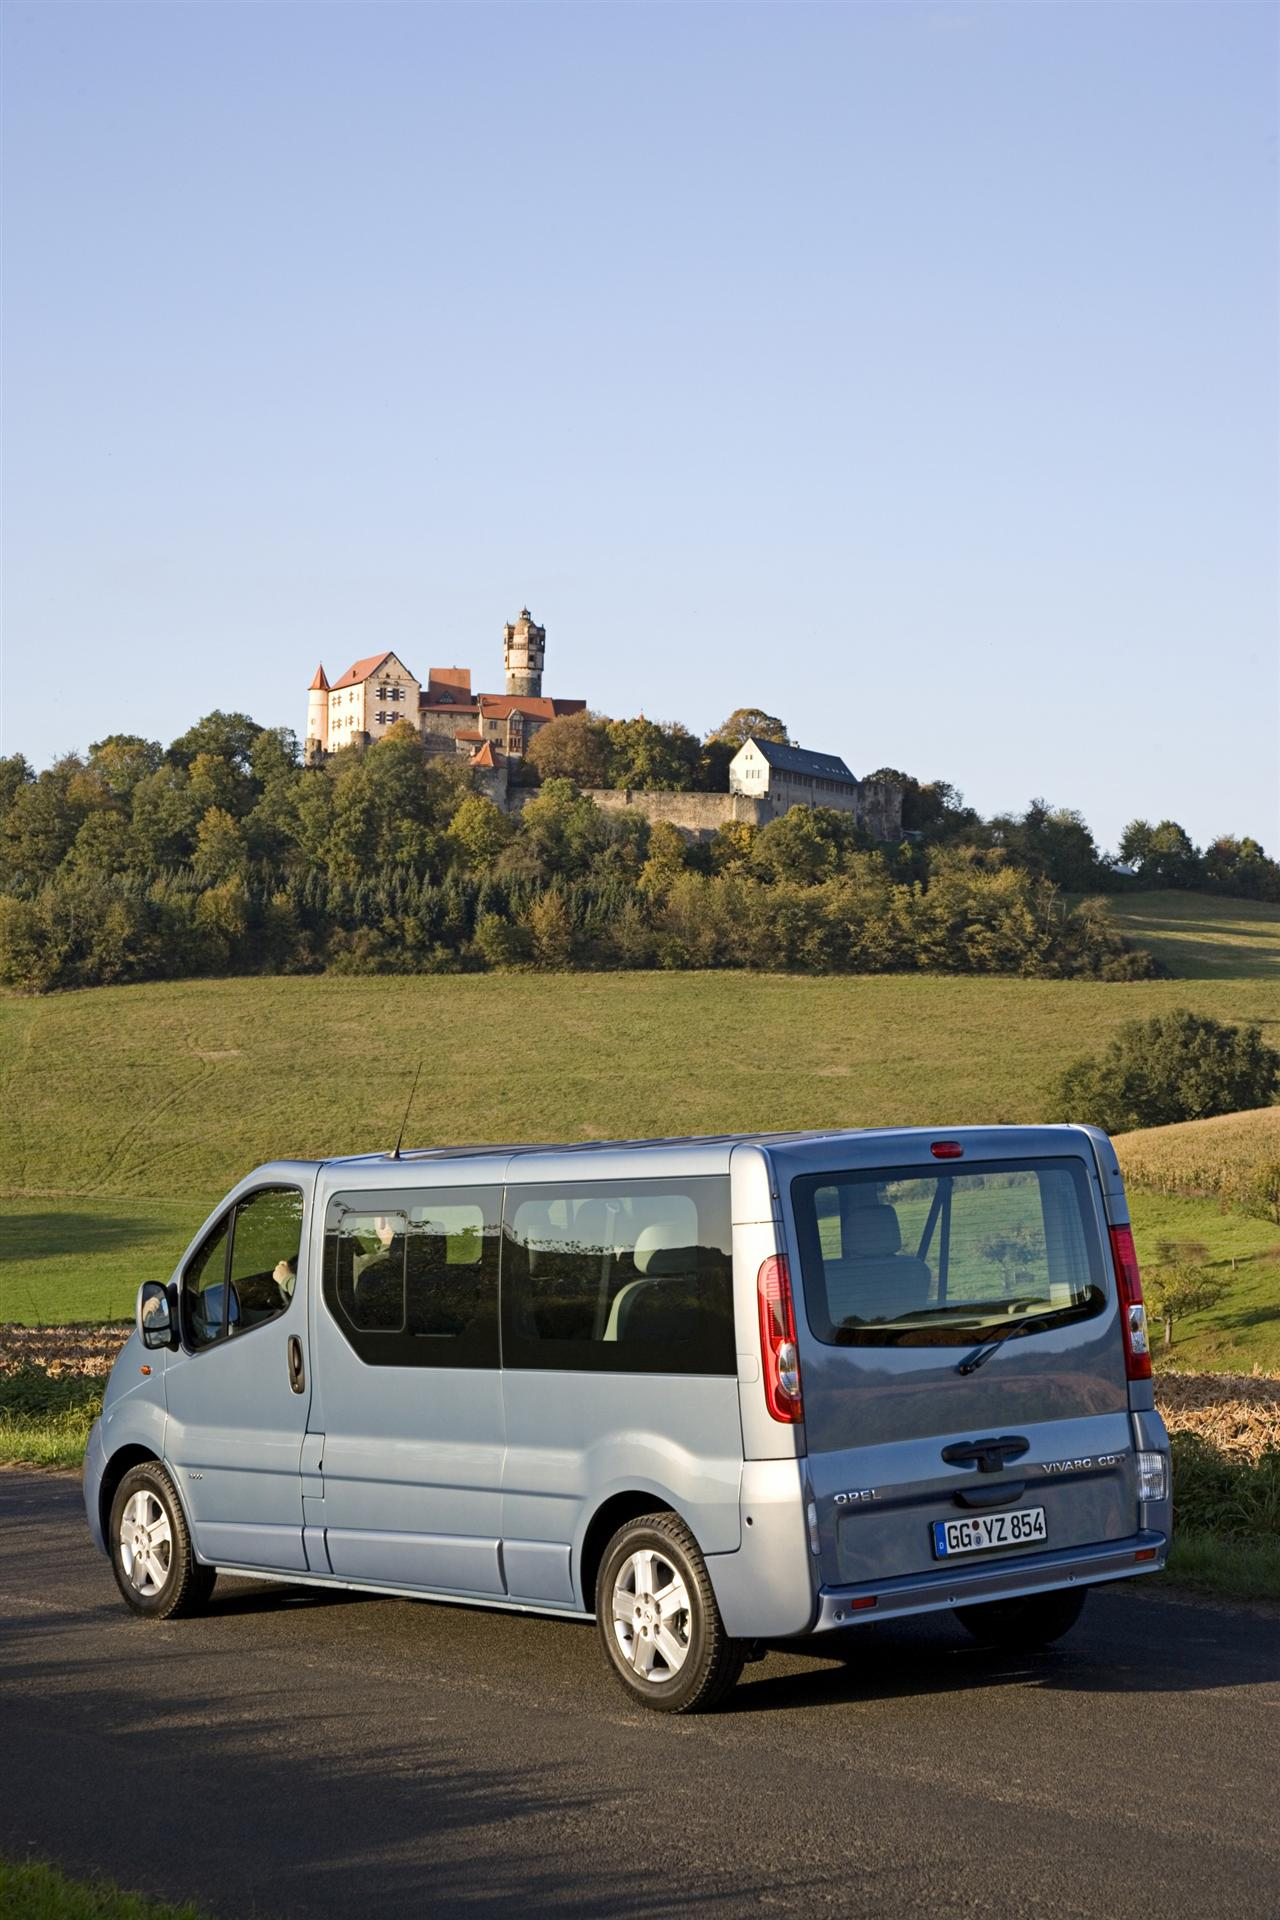 2009 opel vivaro news pictures specifications and autos. Black Bedroom Furniture Sets. Home Design Ideas